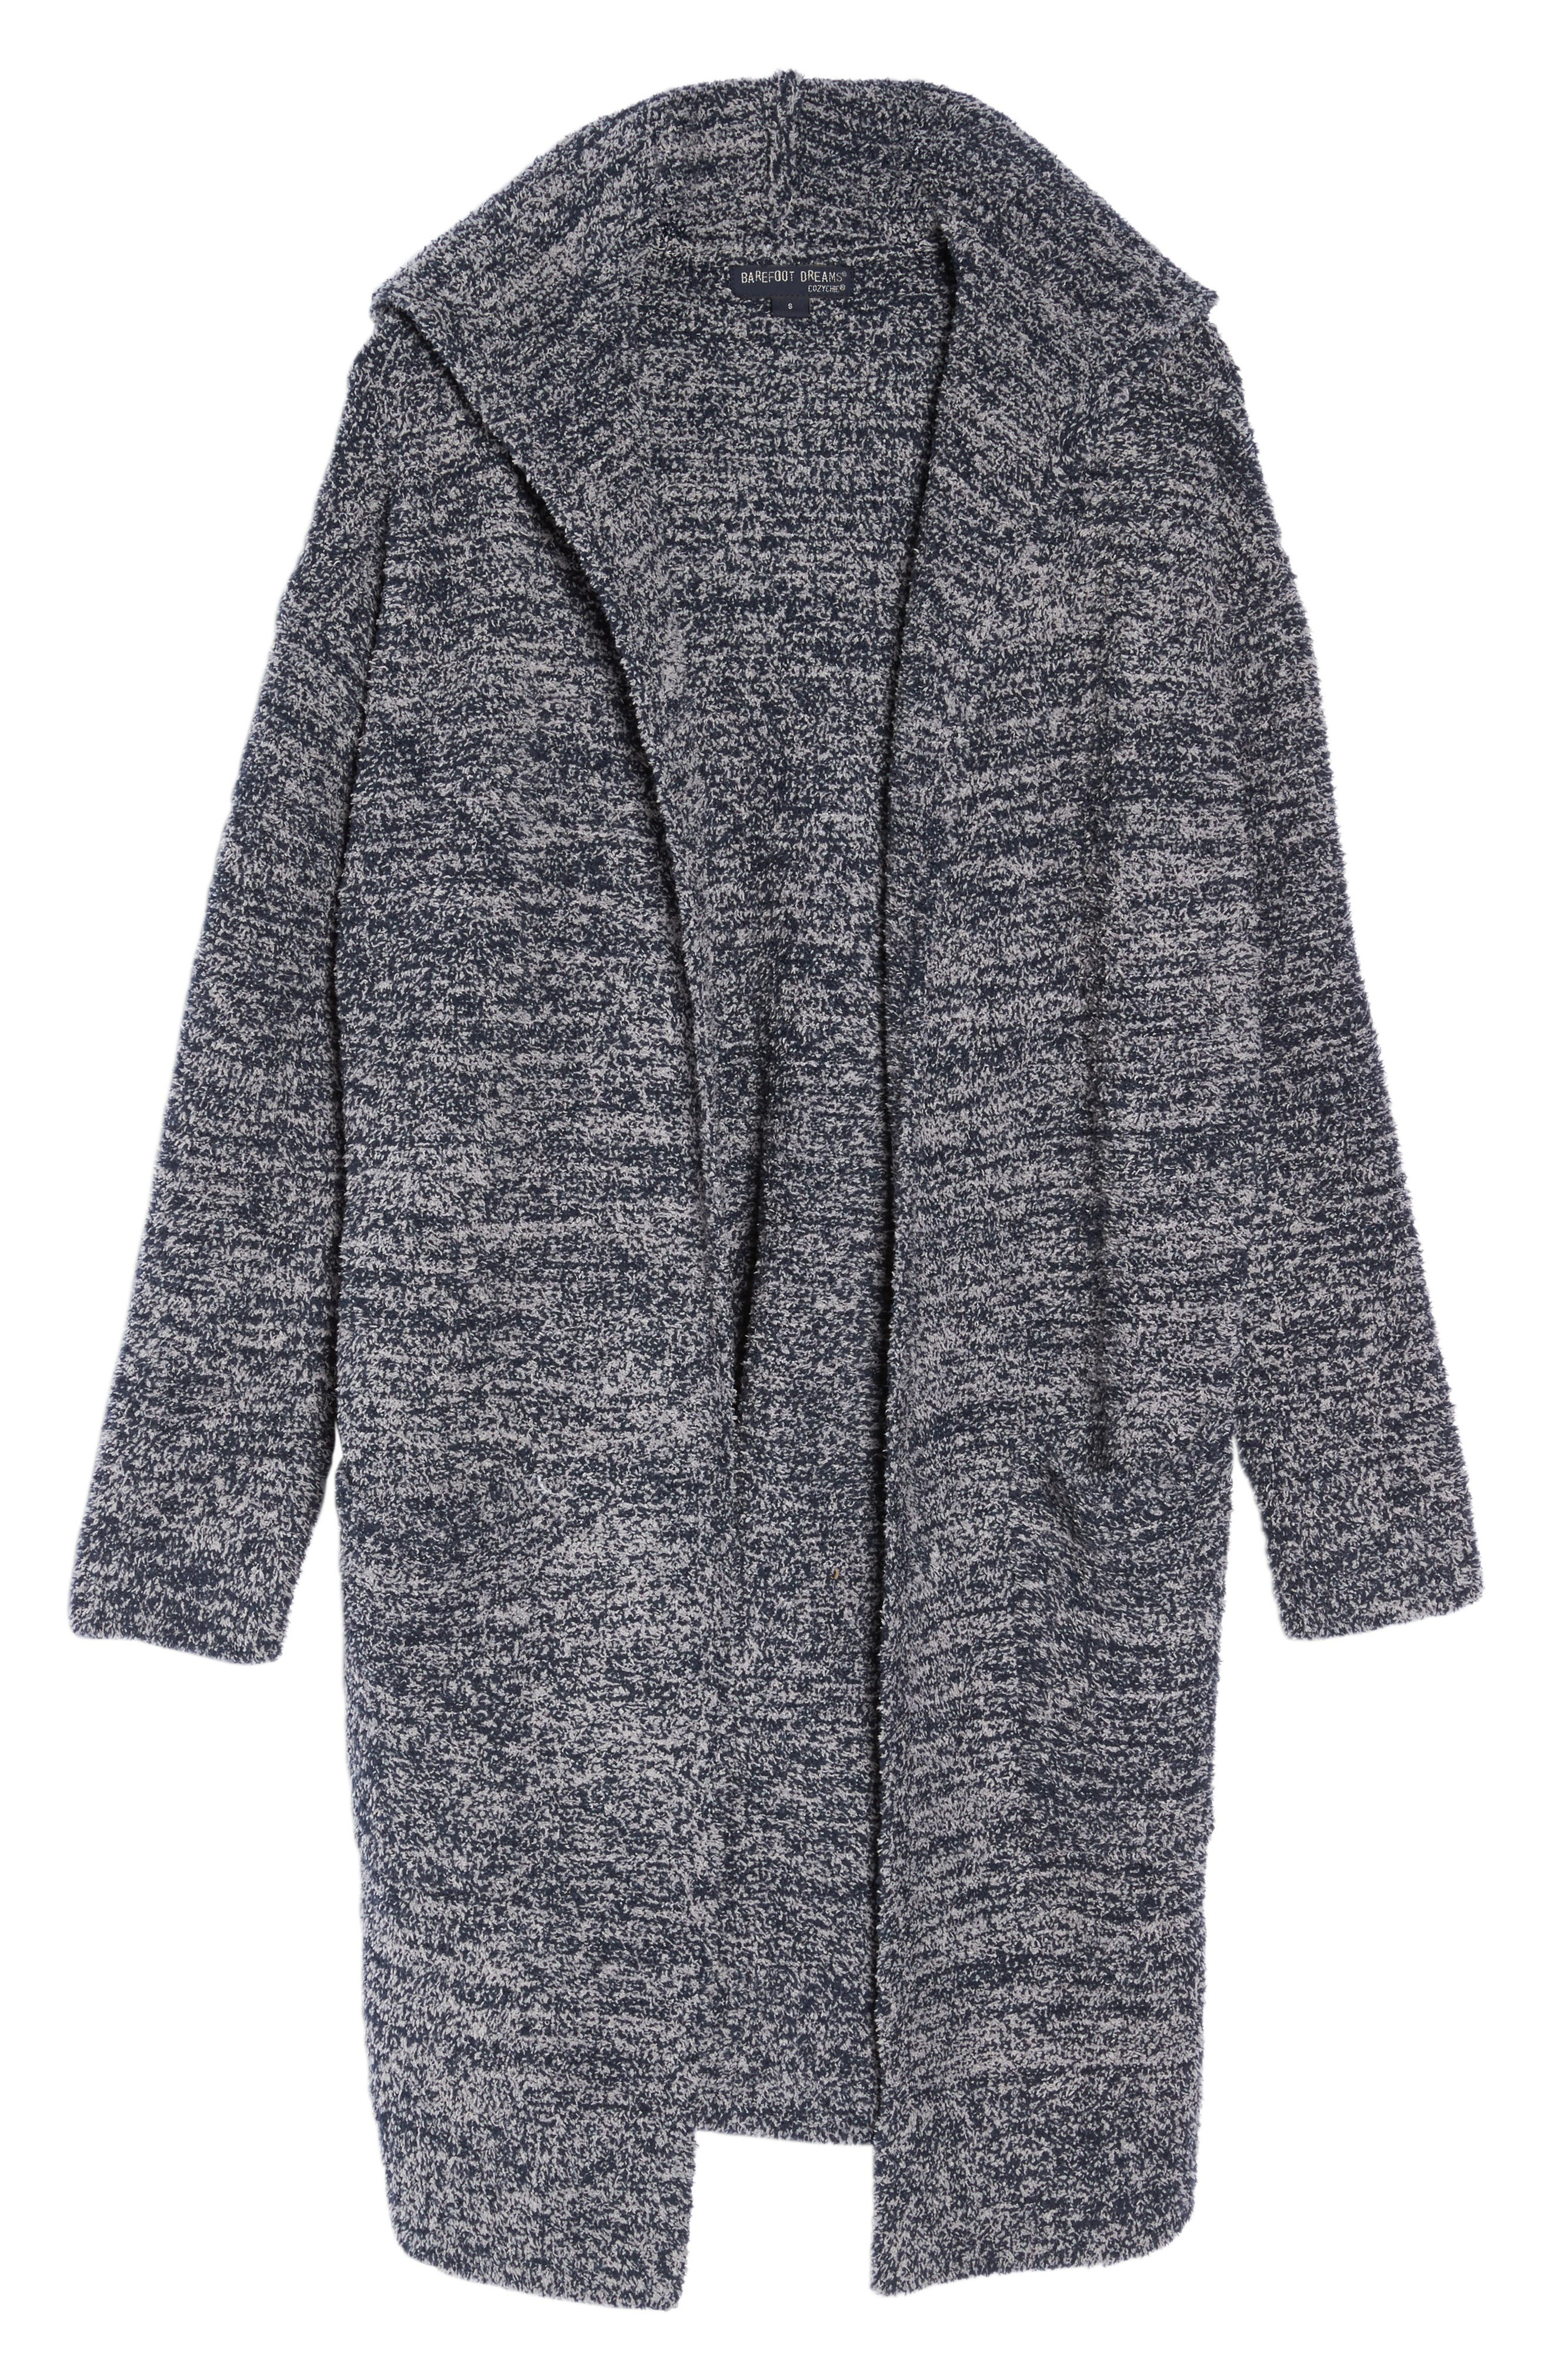 CozyChic<sup>®</sup> California Lounge Coat,                         Main,                         color, Indigo/ Dove